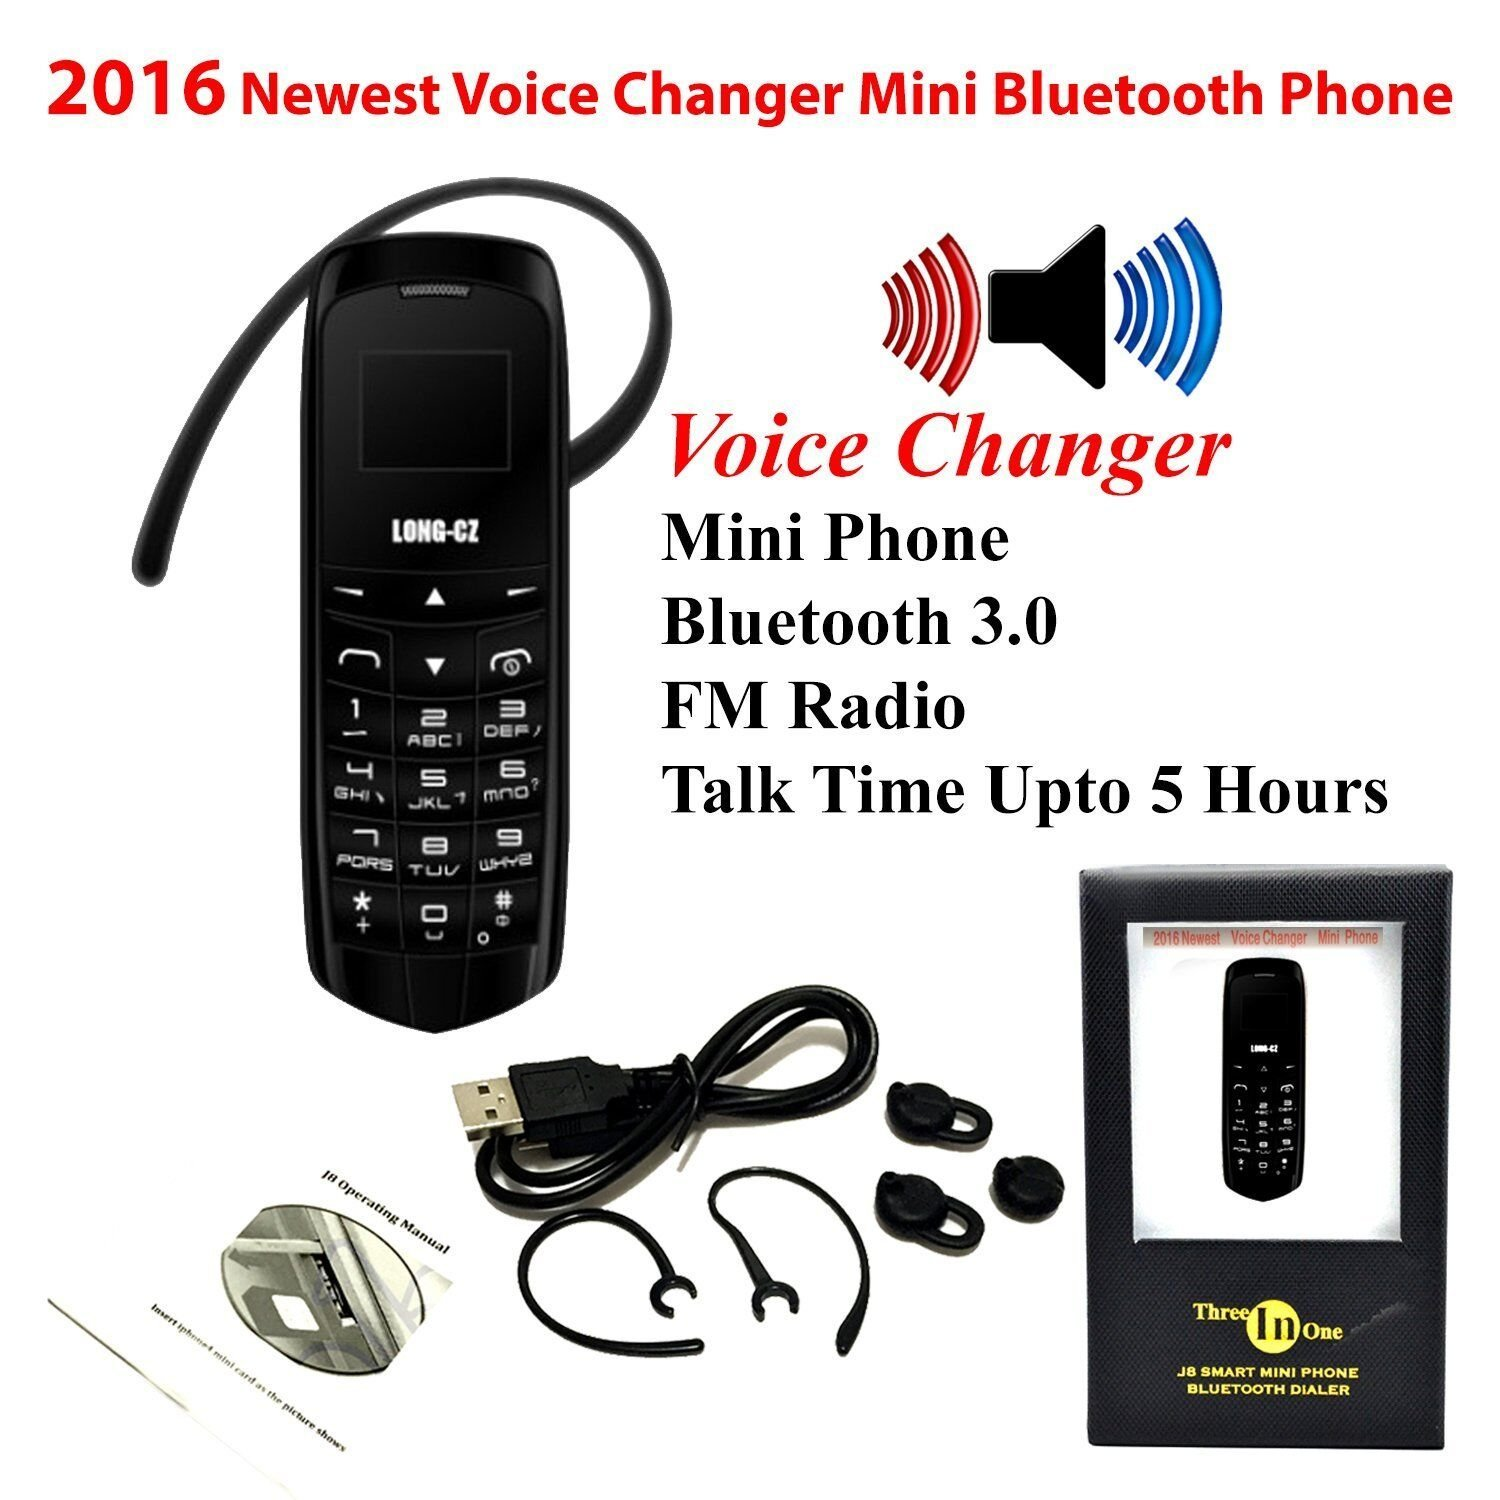 Worlds Smallest Phone 3 in 1 Mini Phone UNLOCKED with Hands Free Bluetooth Dialer,Bluetooth Headphone,SIM Card GSM LONG-CZ J8 Black